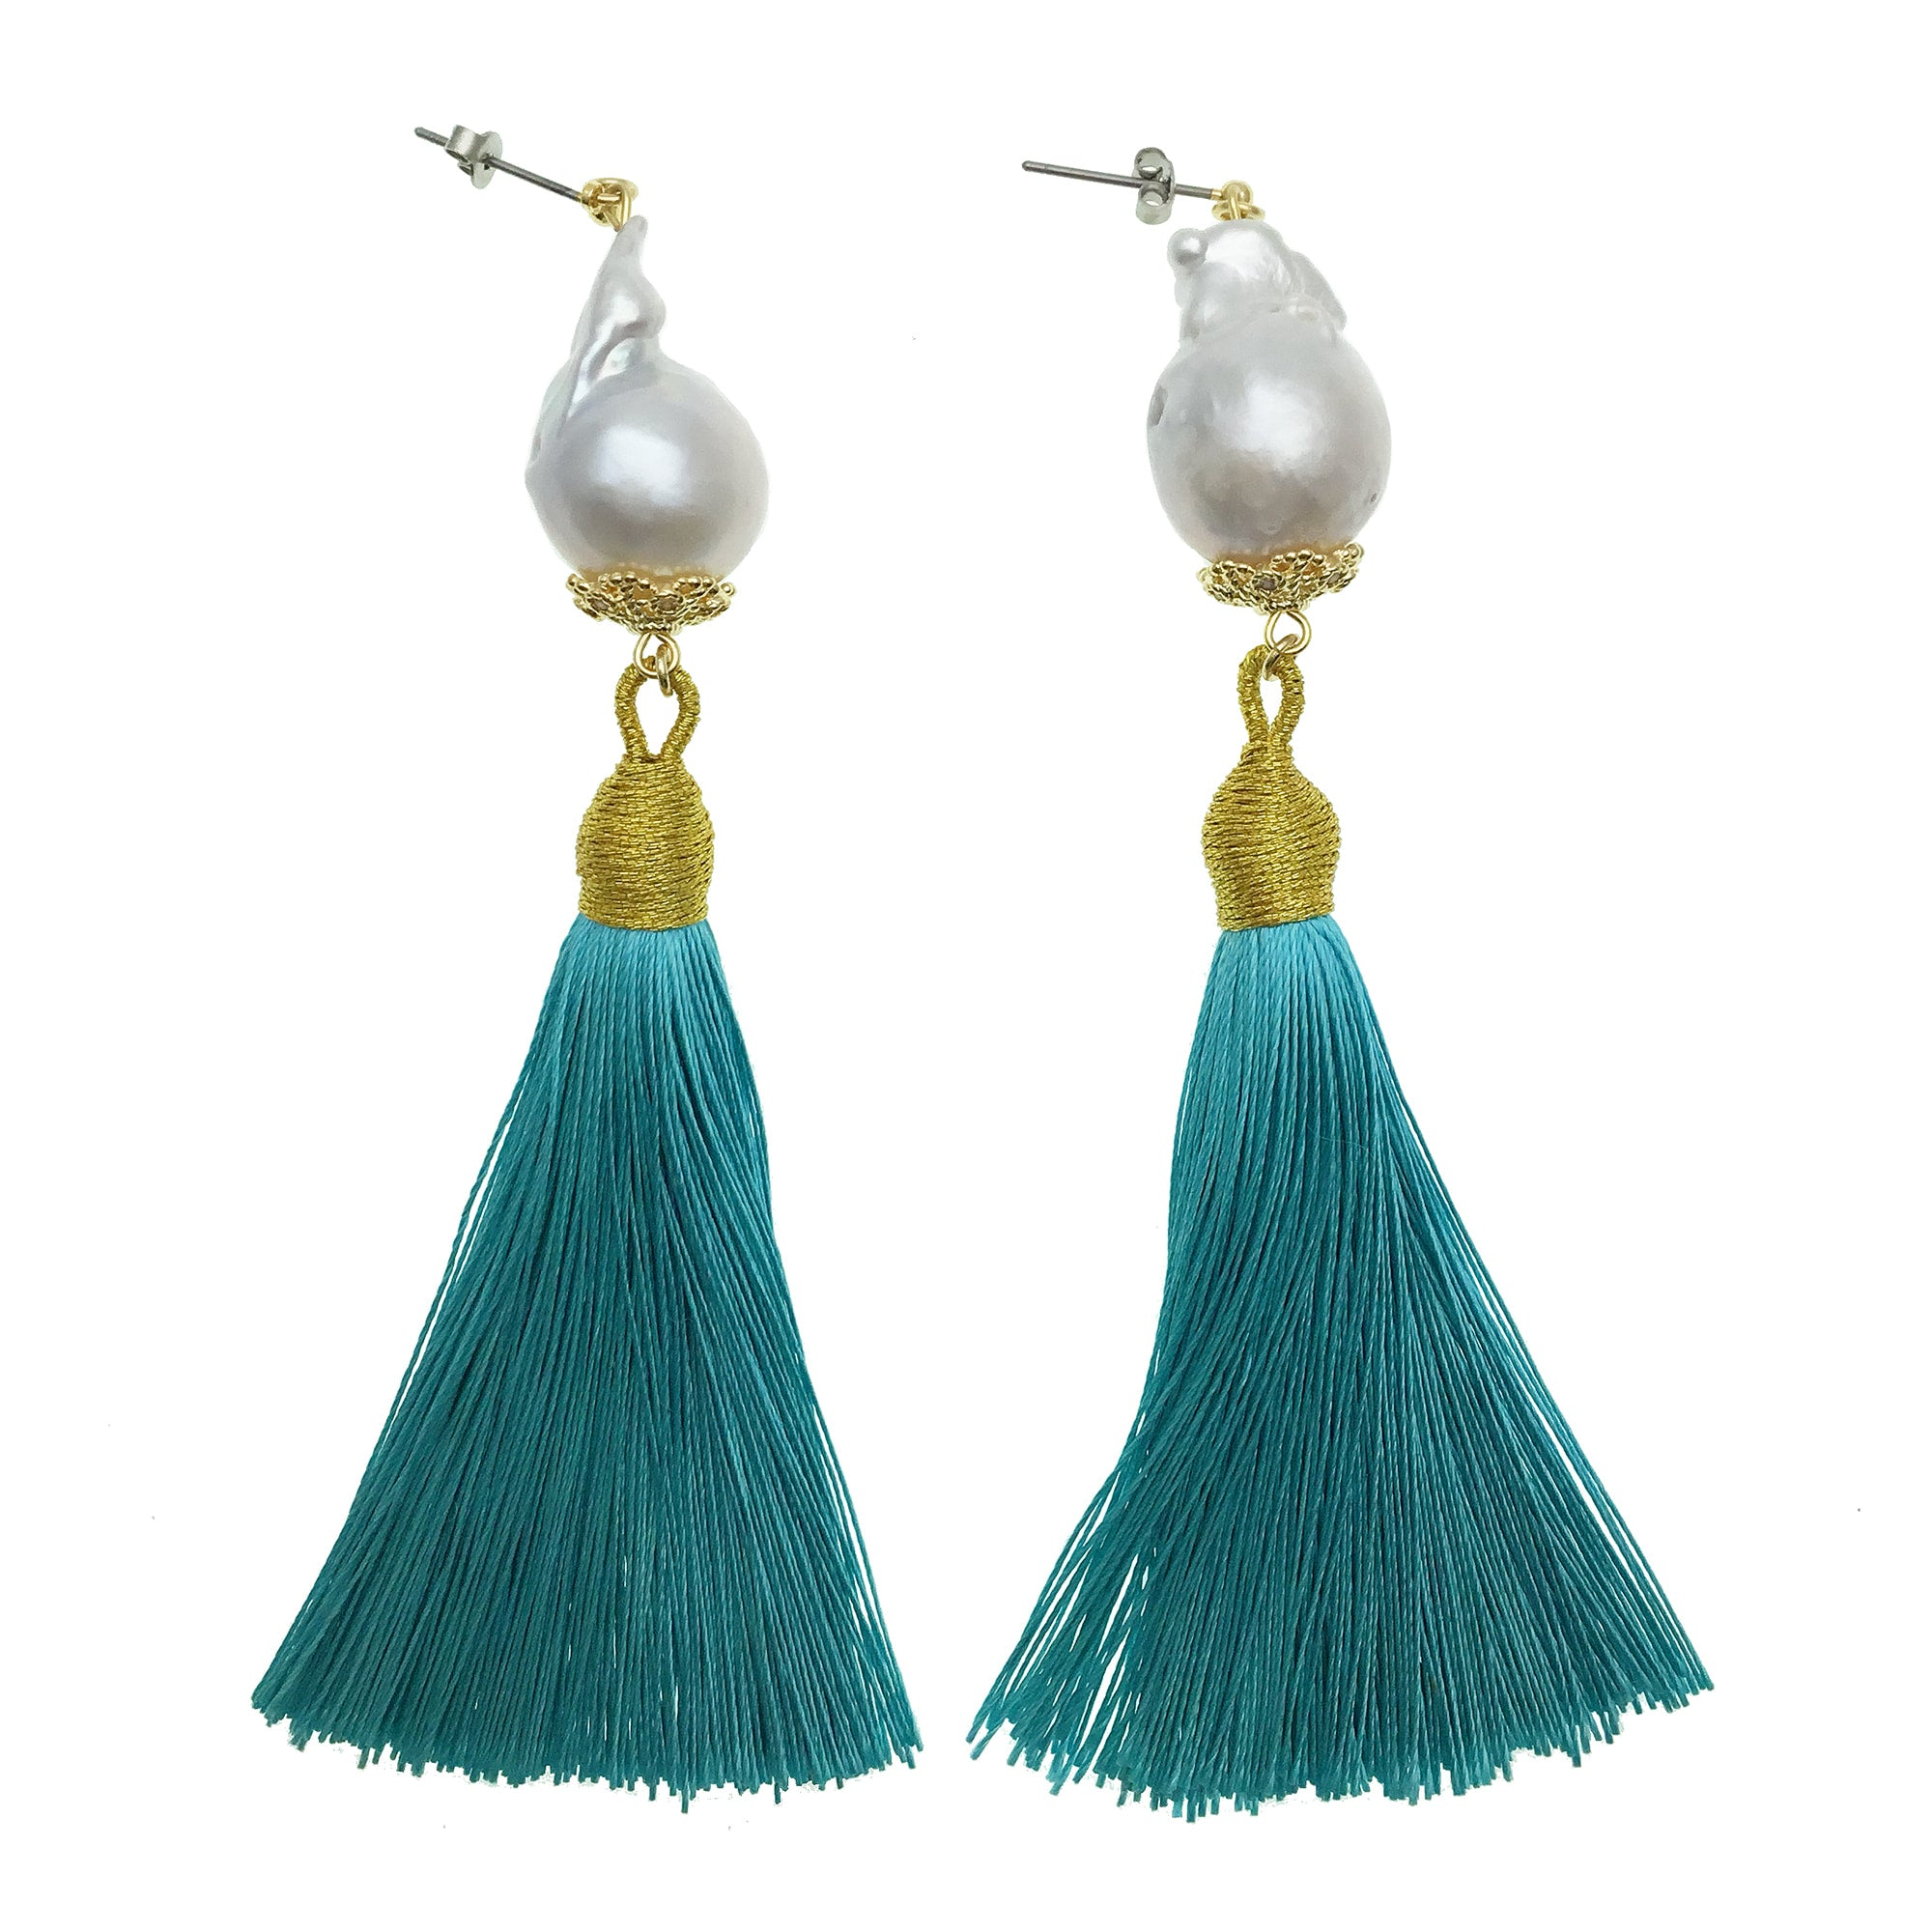 Baroque Pearl and Turquoise Tassel Earrings - Shopidpearl